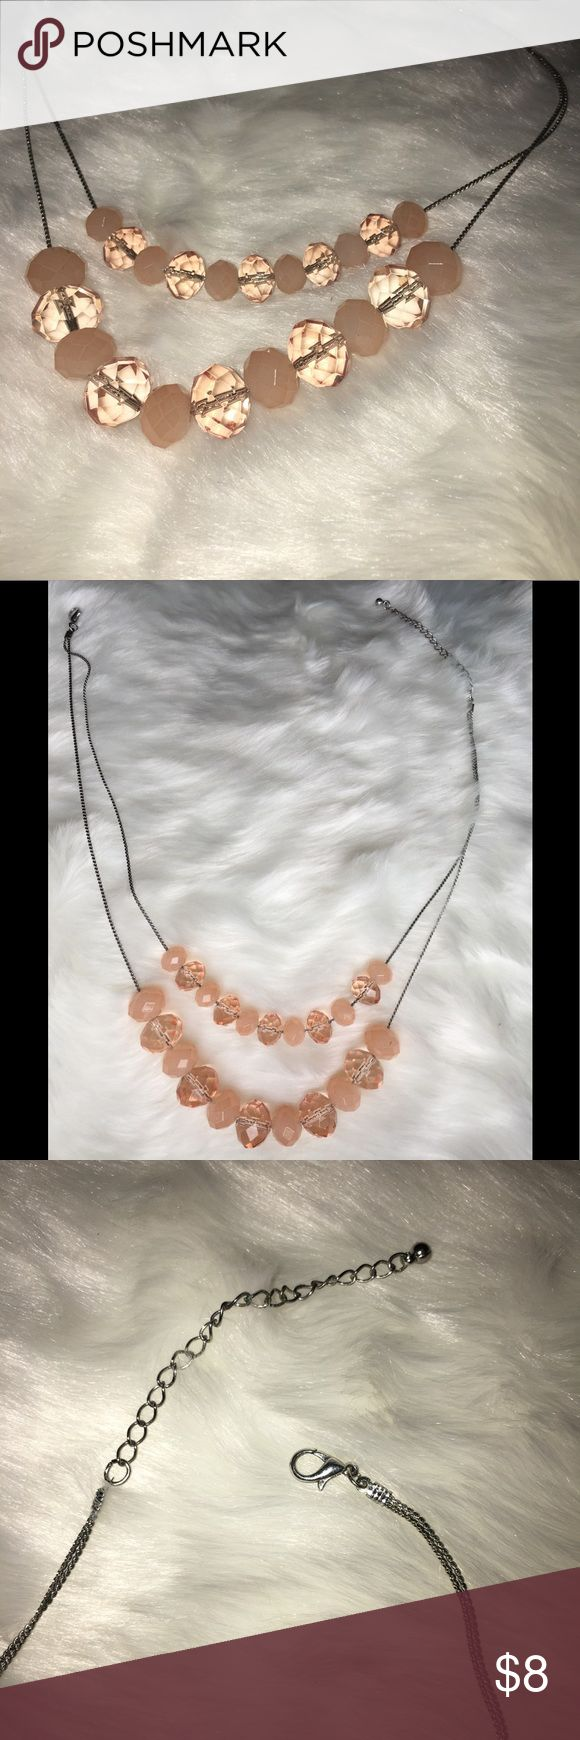 Women's Pink necklace Pin works perfectly fine! Has a heavy duty feel to it, this simple pale pink necklace is amazing with a nice shirt for out and about downtown or night time fun! Jewelry Necklaces